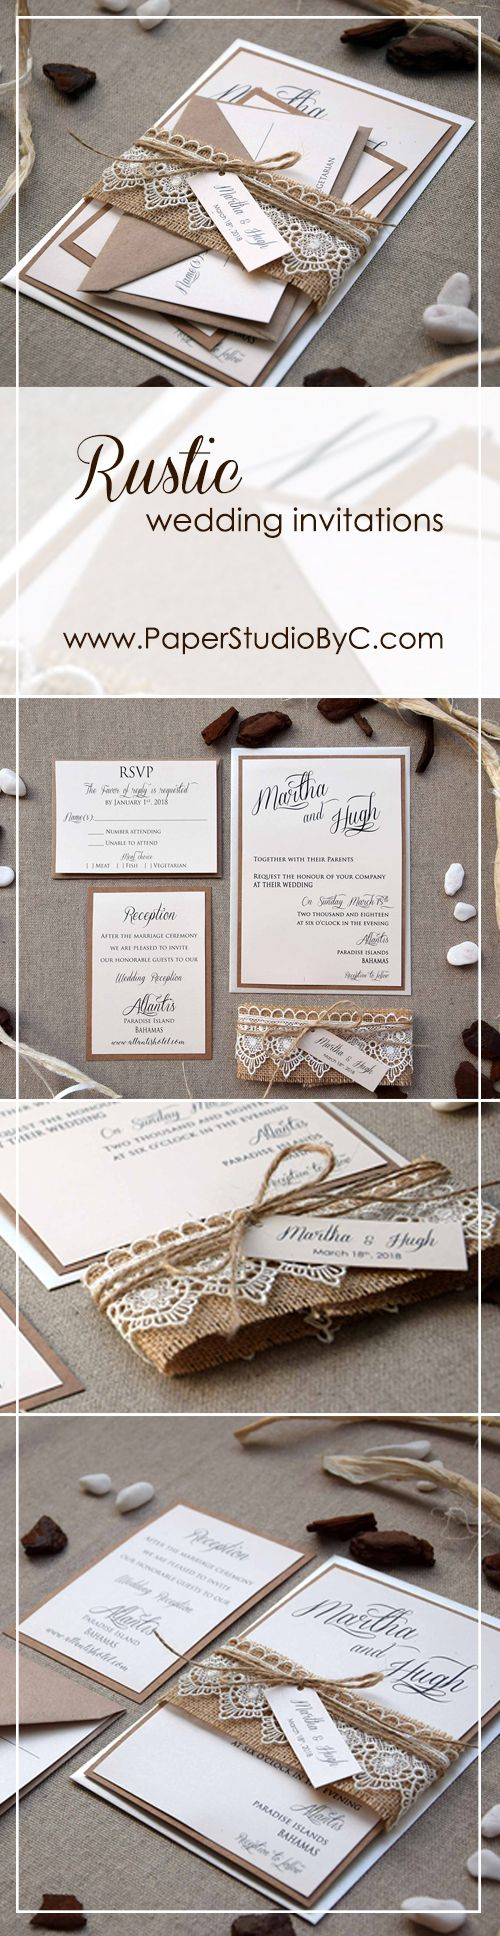 reception information on back of wedding invitation%0A Rustic Lace Wedding Invite  Burlap and Lace Wedding Invitation Kit  Custom Wedding  Invitation